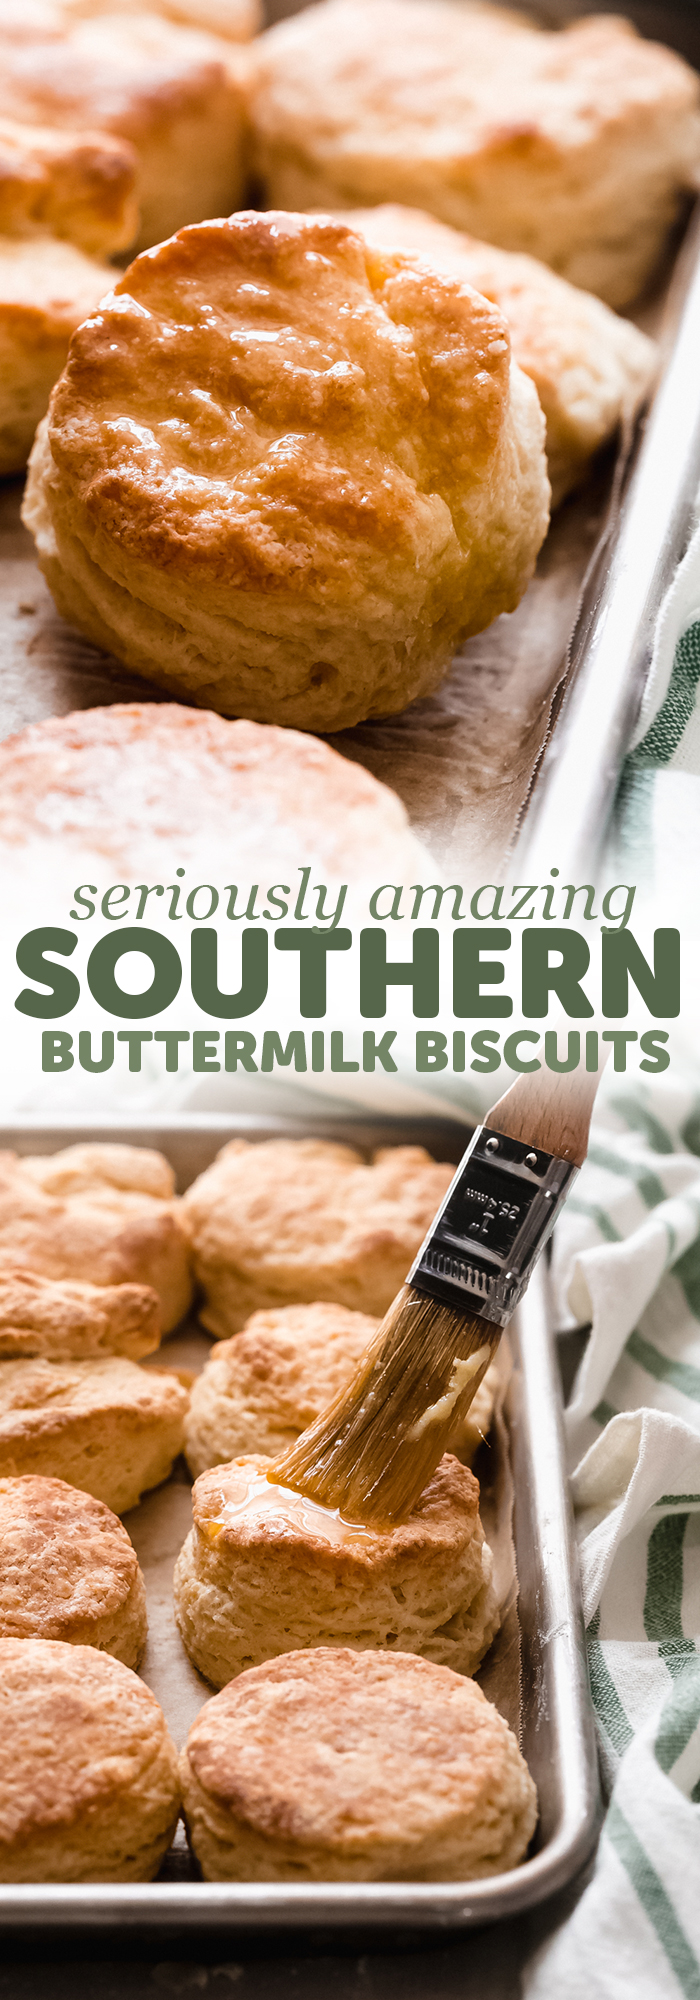 Amazing Southern Buttermilk Biscuits - Learn how to make the BEST buttermilk biscuits with 1 additional ingreident and 1 simple trick! These biscuits are sure to please everyone! #buttermilkbiscuits #biscuits #homemadebiscuits #homemaderolls #dinnerrolls #biscuitrecipe | Littlespicejar.com